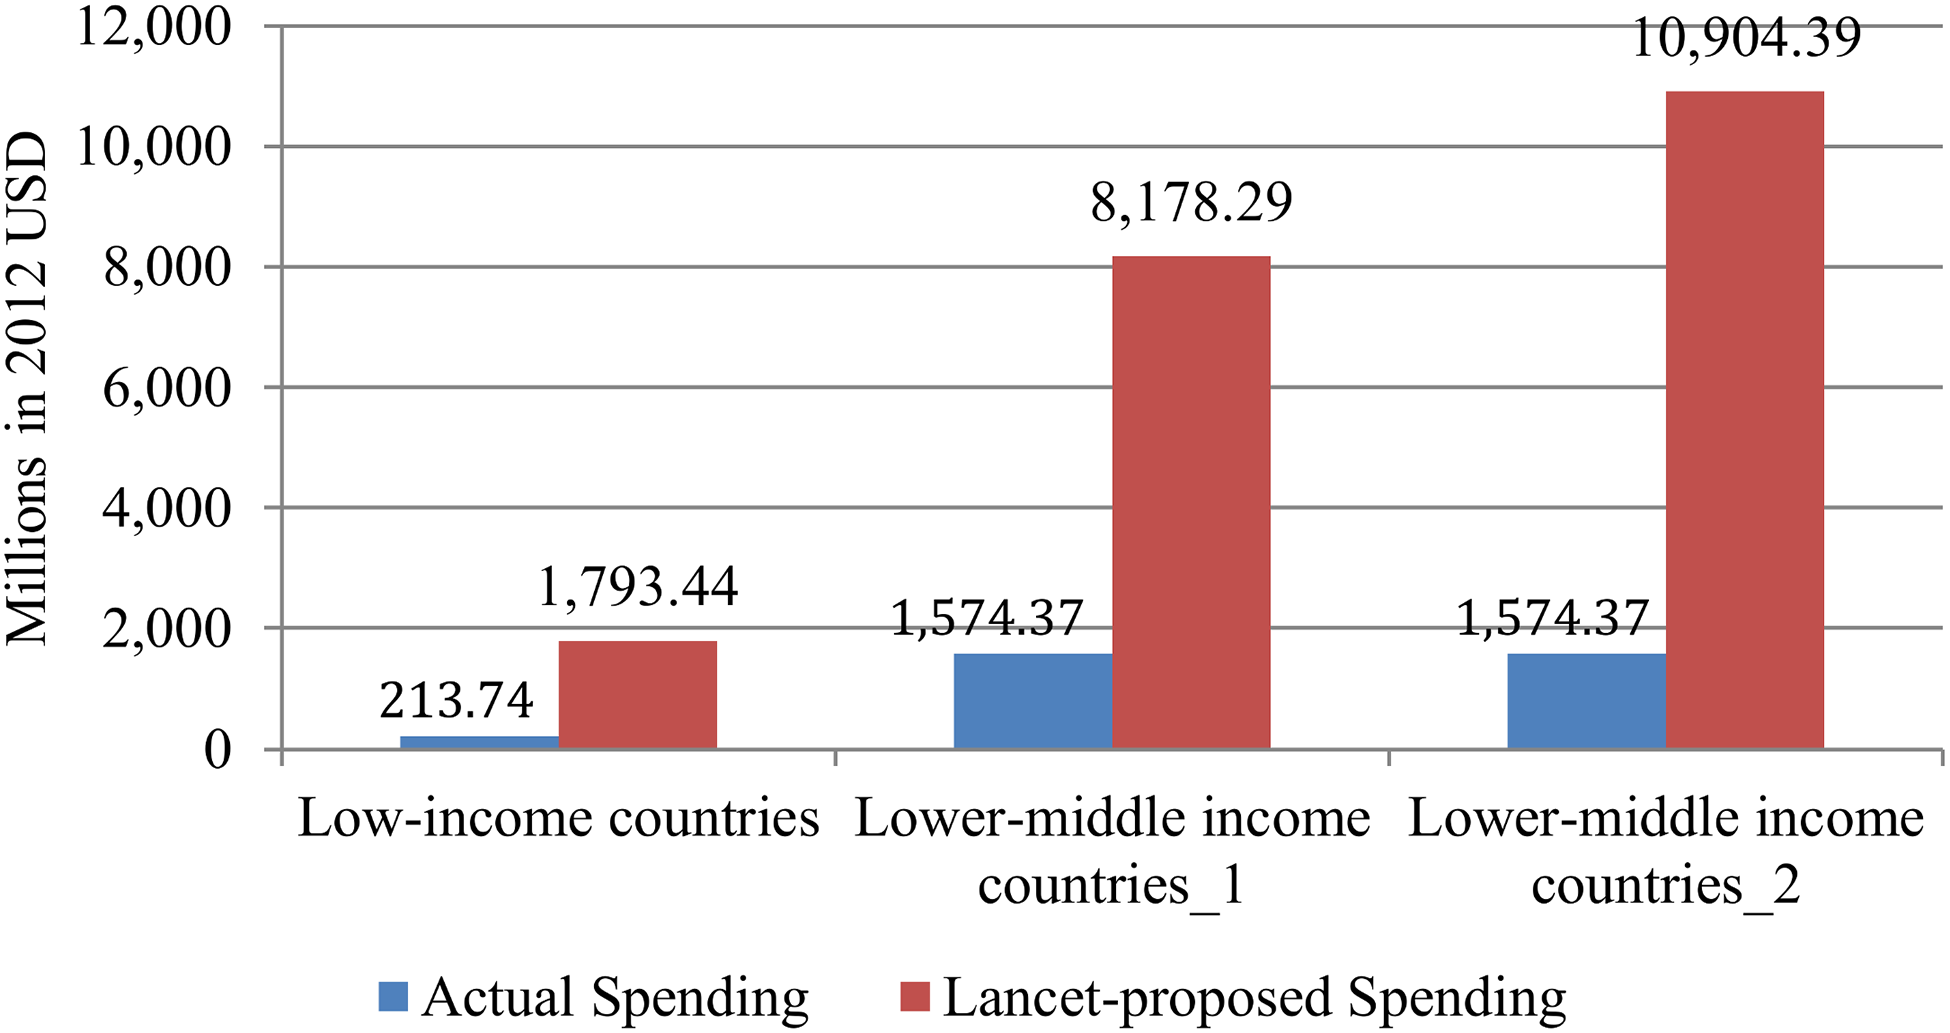 Financial gap between actual spending and spending proposed by the Lancet Global Mental Health Group (LGMHG).